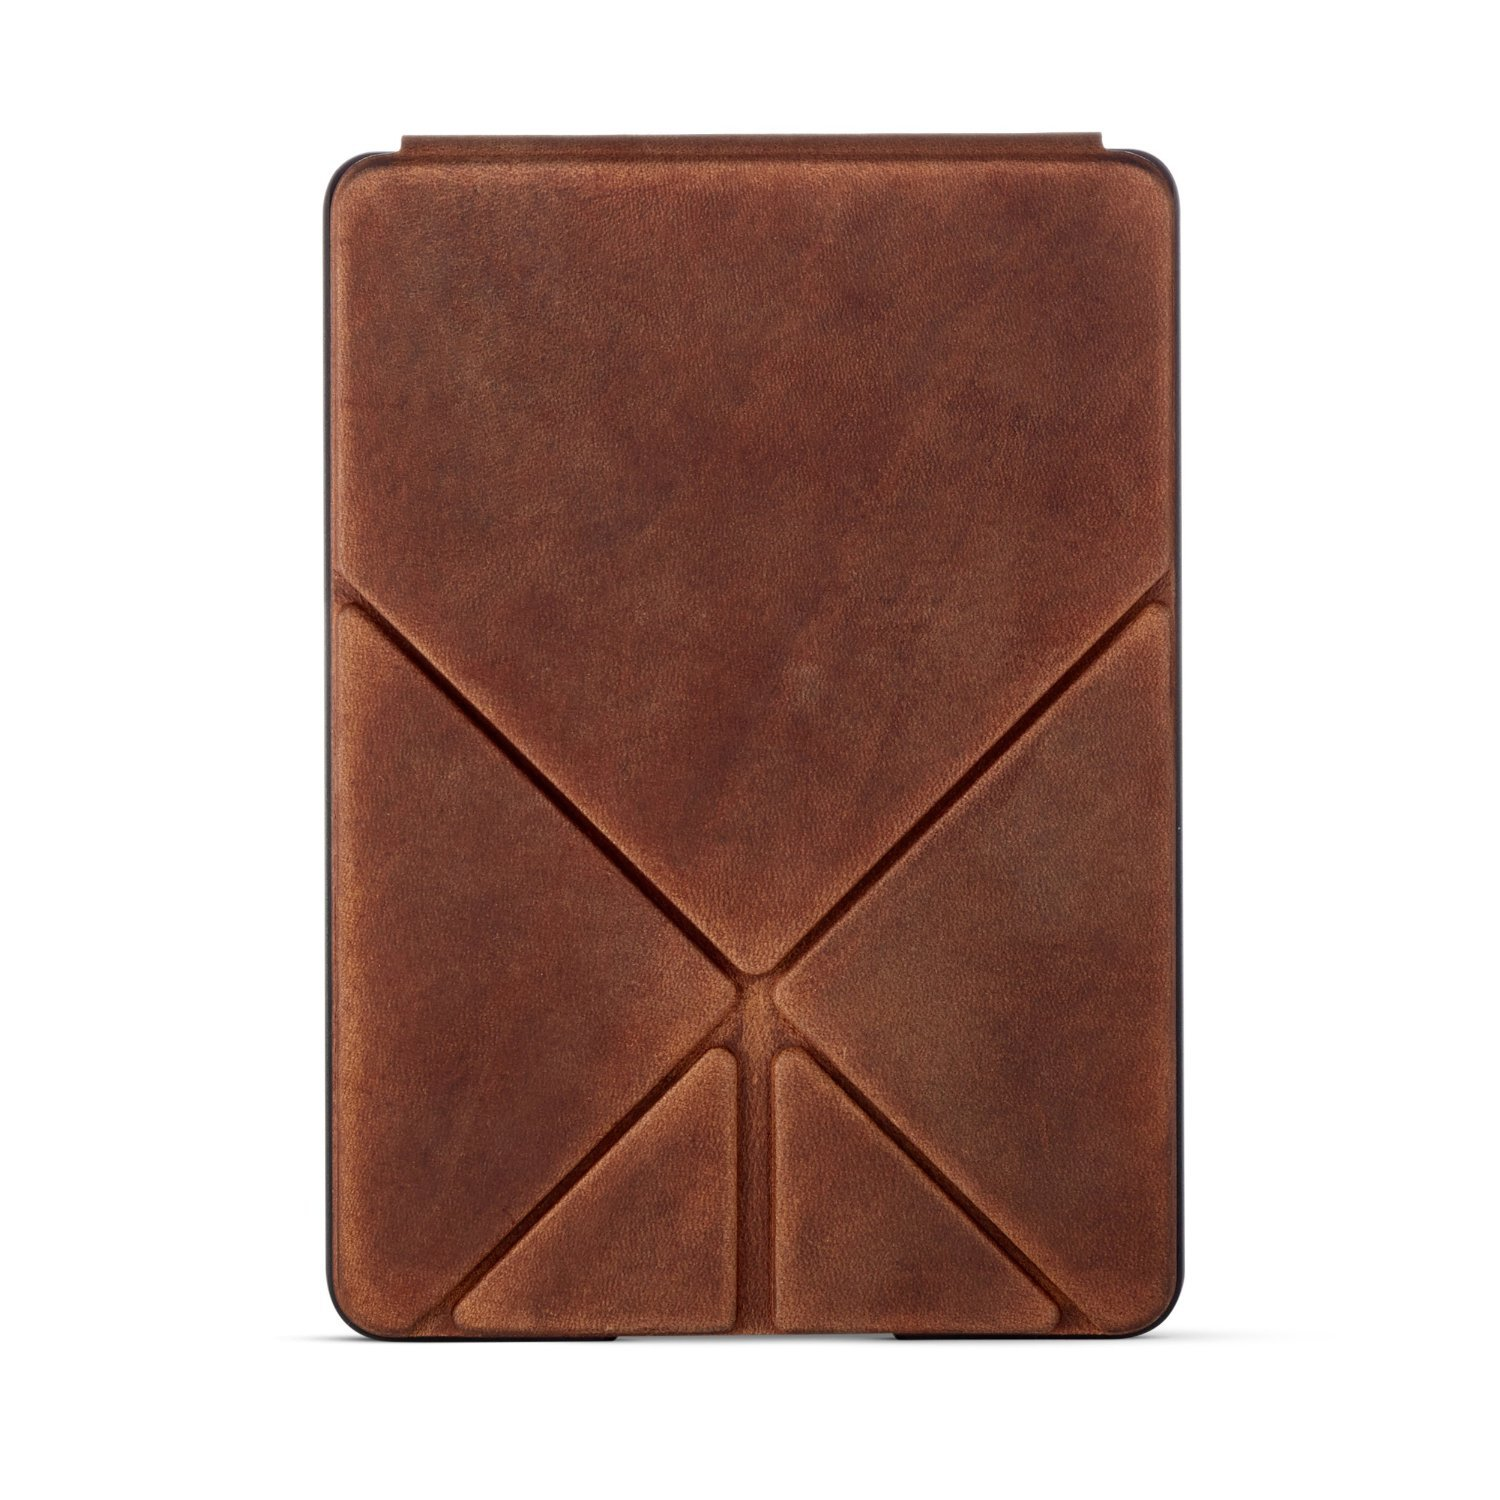 Чехол для Amazon Kindle Voyage Limited Edition Premium Leather Origami Cover (коричневый). Фото N2